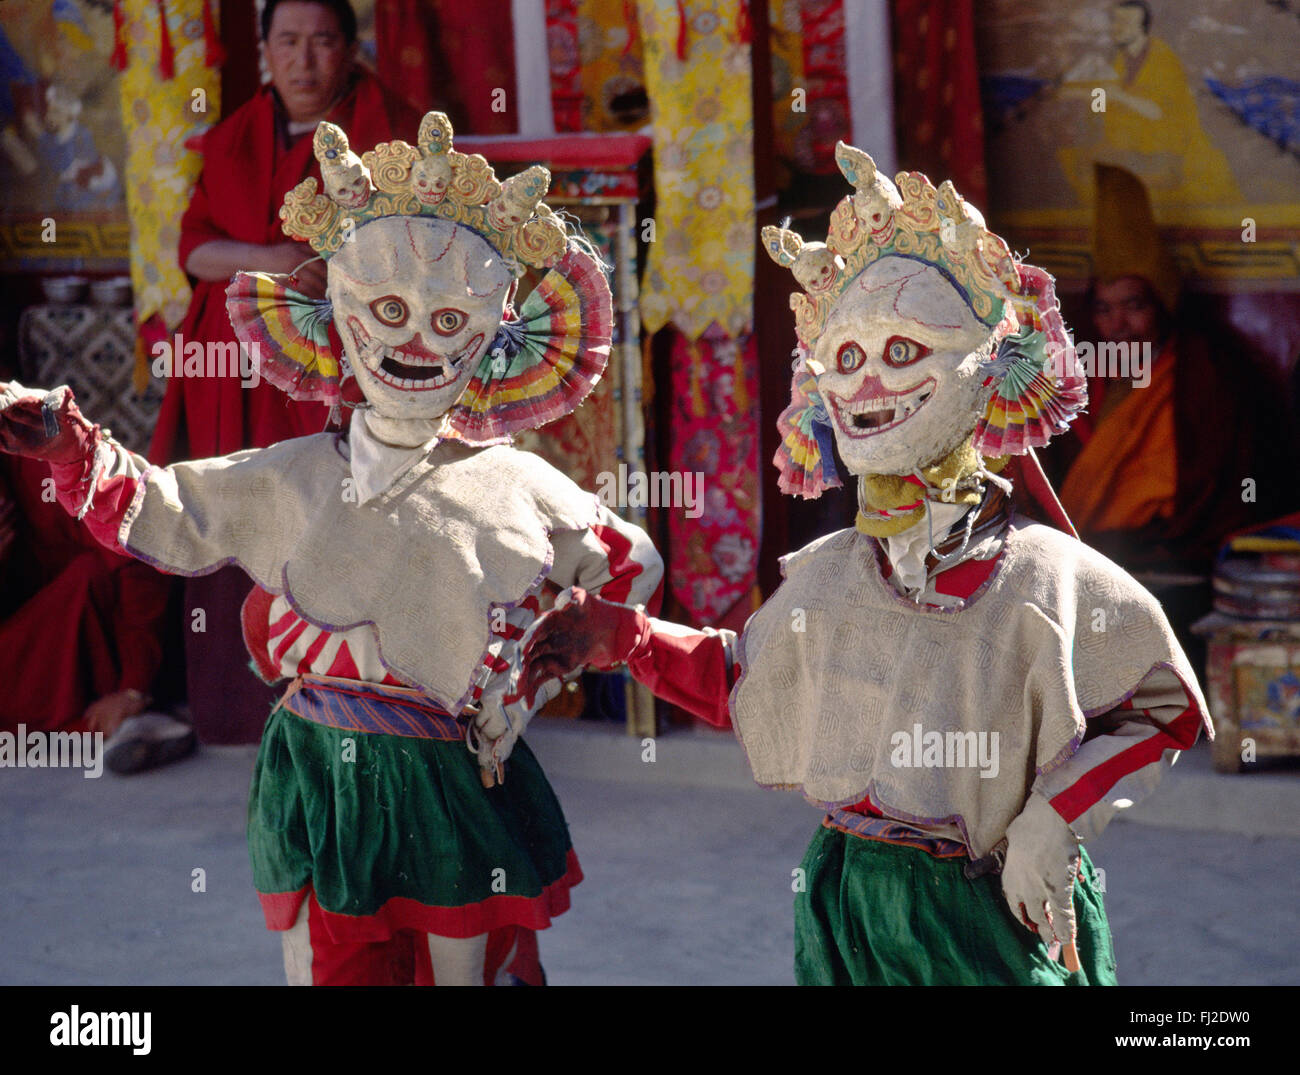 SKULL MASK DANCERS, representing non-attachment, and used as comic relief, TIKSE Monastery Masked Dances - LADAKH, - Stock Image